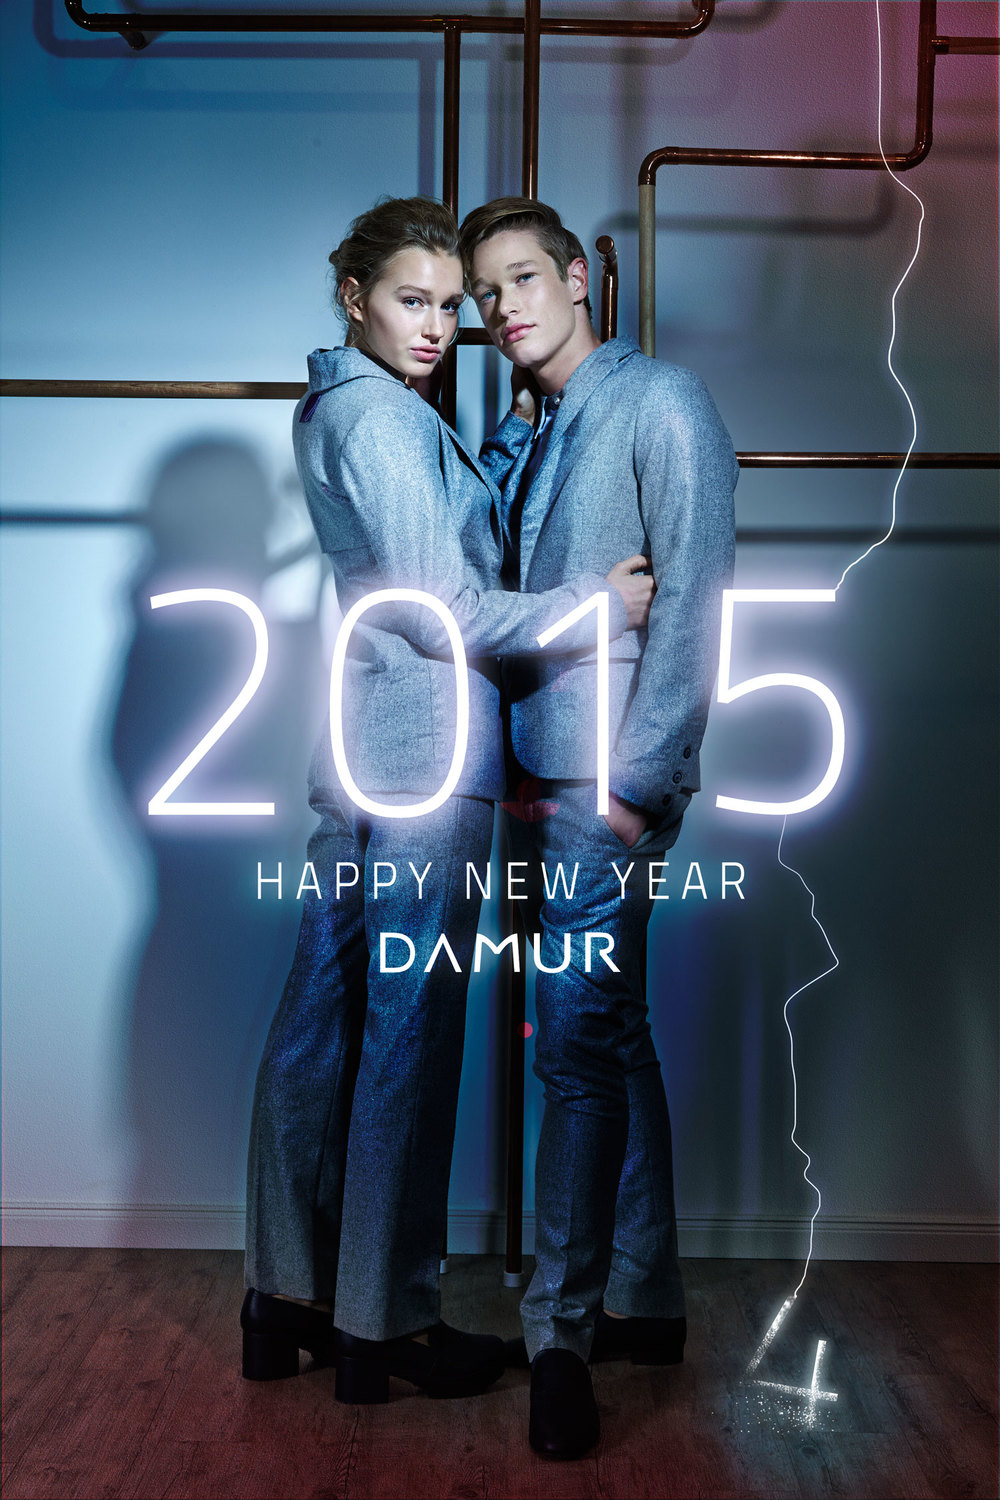 DAMUR wishes you a great beginning of 2015!     We are pleased to announce that twenty fifteen is going to be a special year for DAMUR. We look forward to sharing the news of all our exciting projects as they unfold.     Stay tuned!